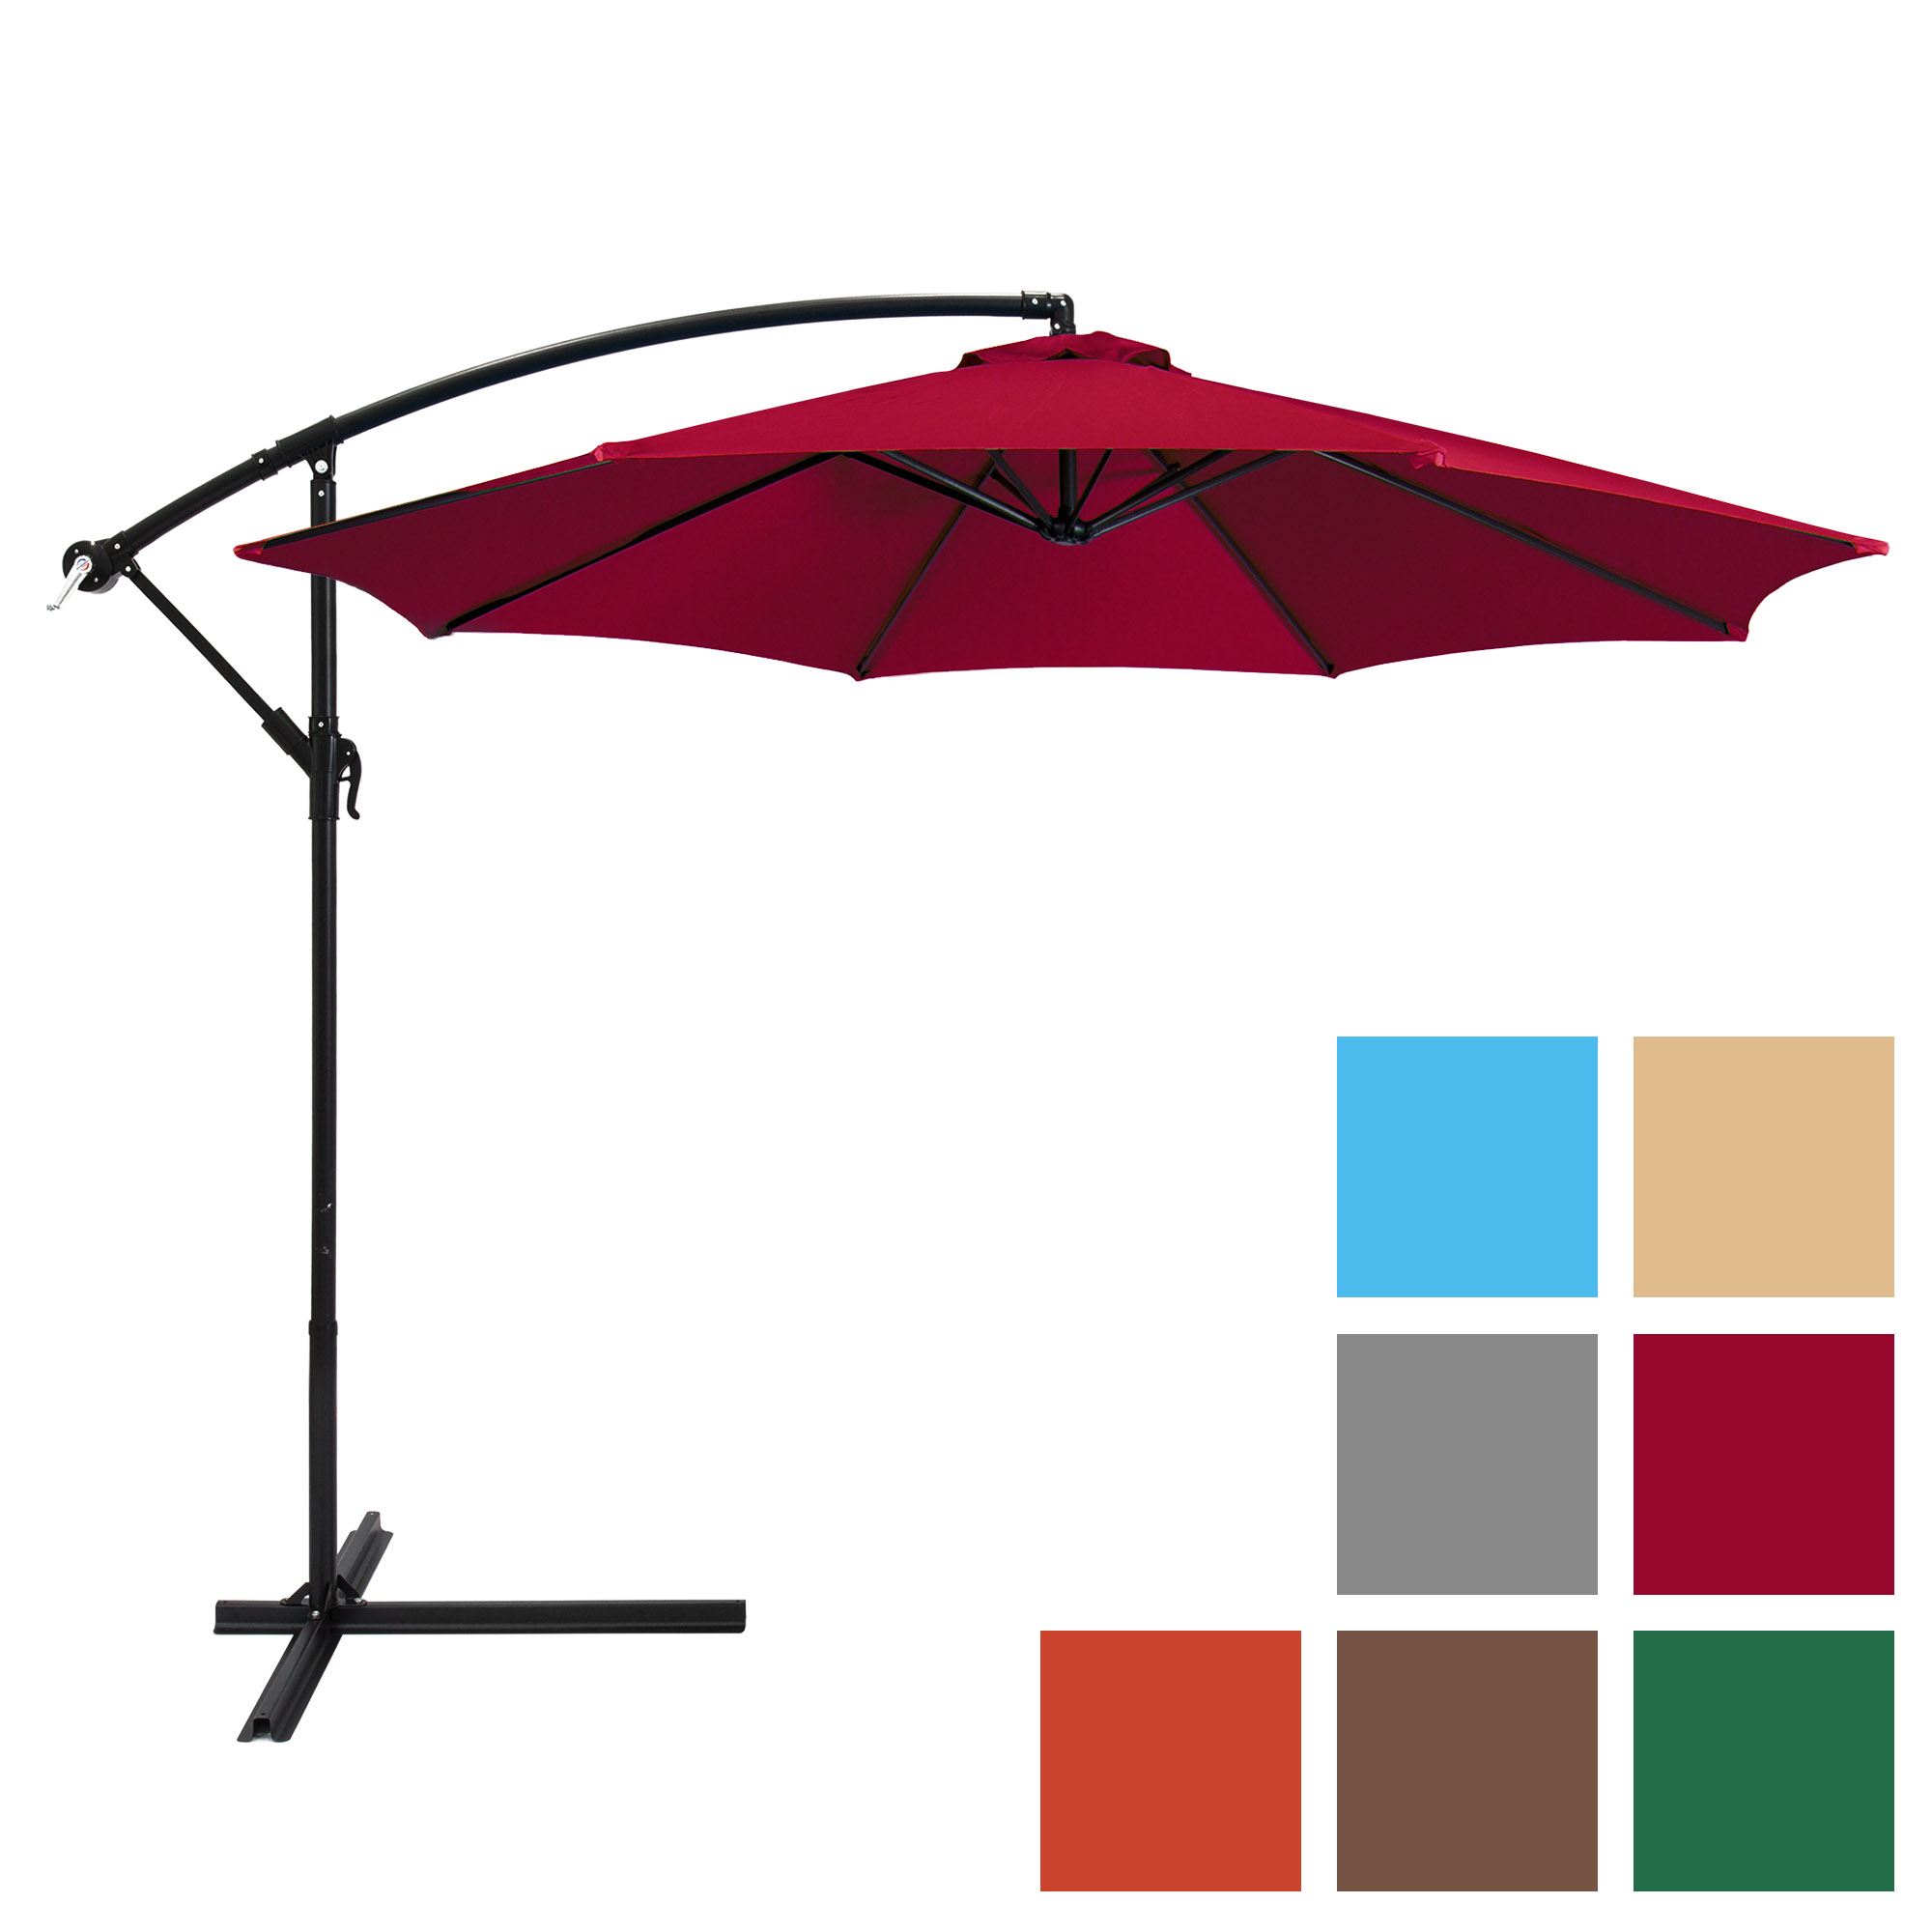 Best Choice Products 10ft Offset Hanging Outdoor Market Patio Umbrella - Multiple Colors